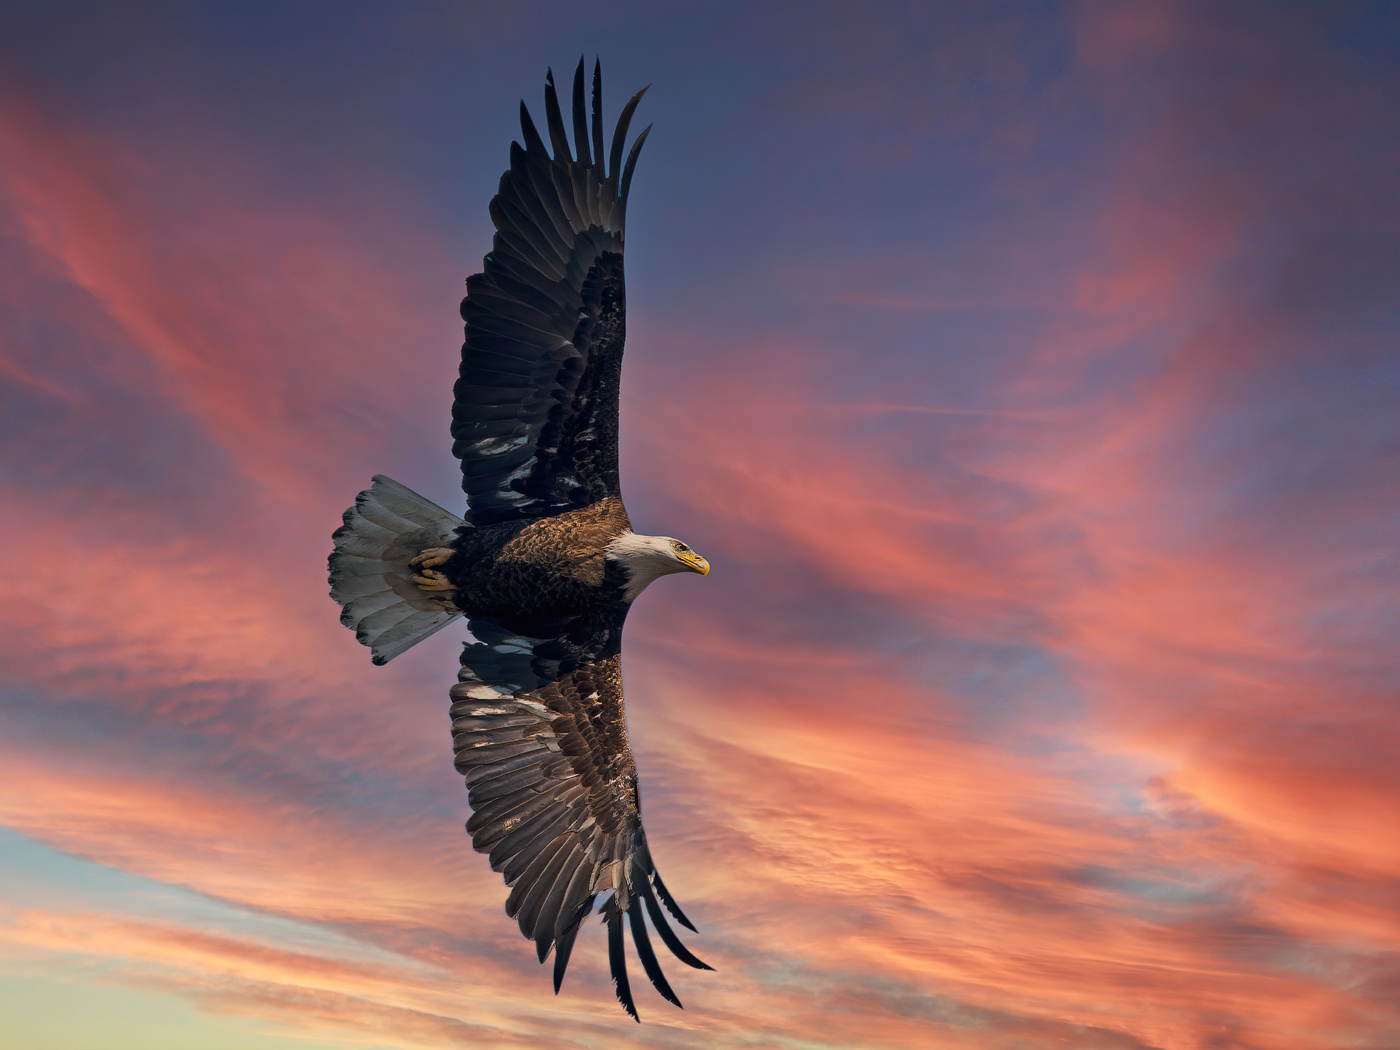 bald-eagle-open-wings-sky-5k-pi.jpg